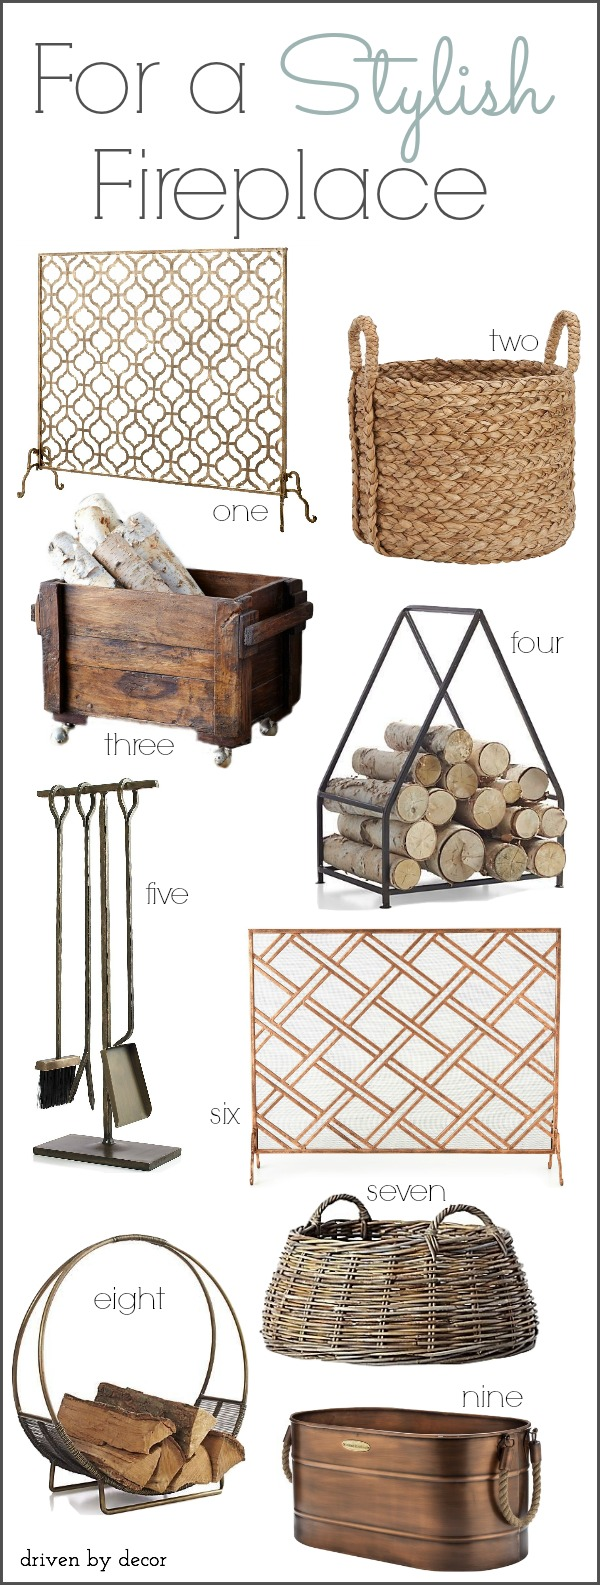 Stylish Fireplace Accessories Driven By Decor